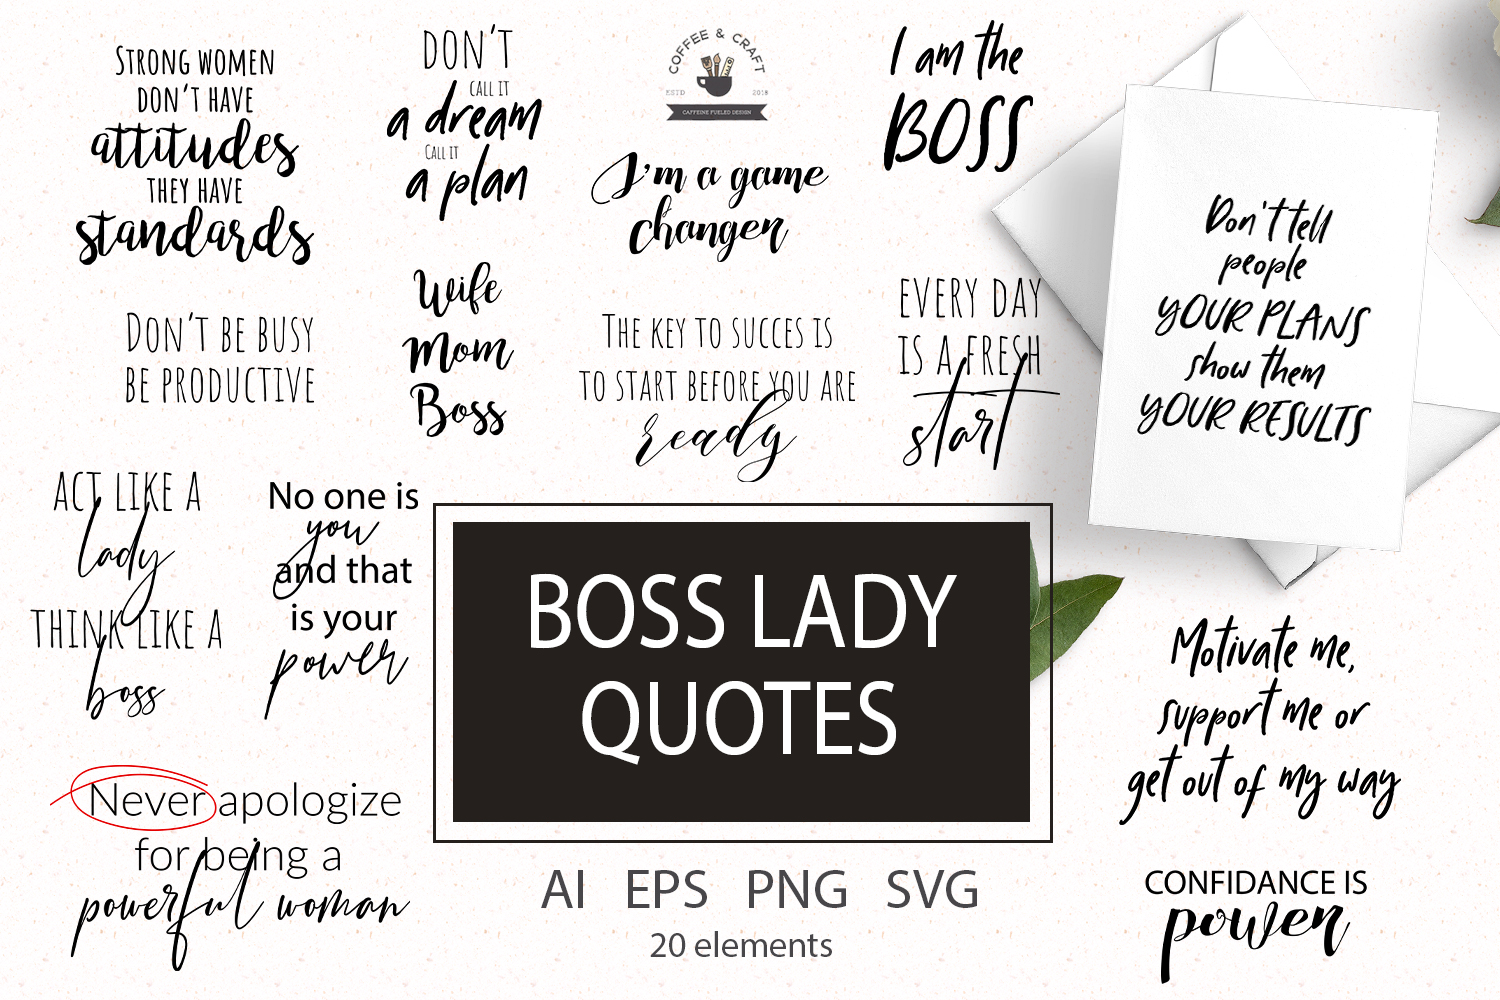 Boss lady quotes example image 1